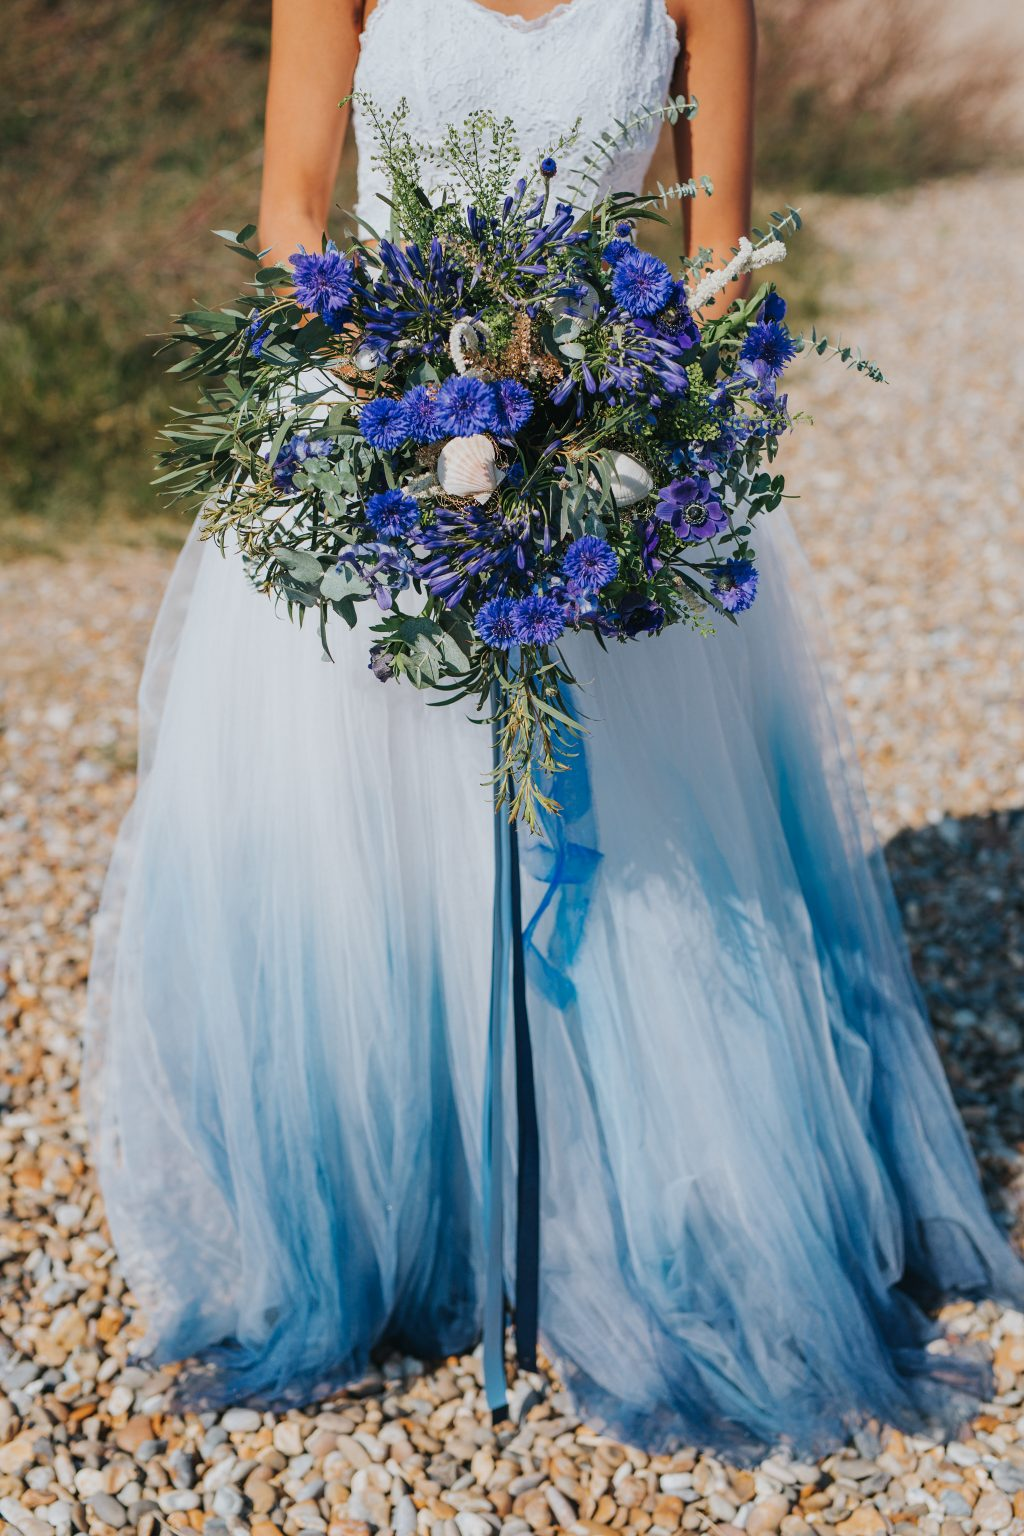 Beach Ombre Blue Wedding Dress Mypic Asia,Sepedi Traditional Wedding Dresses For Bridesmaids